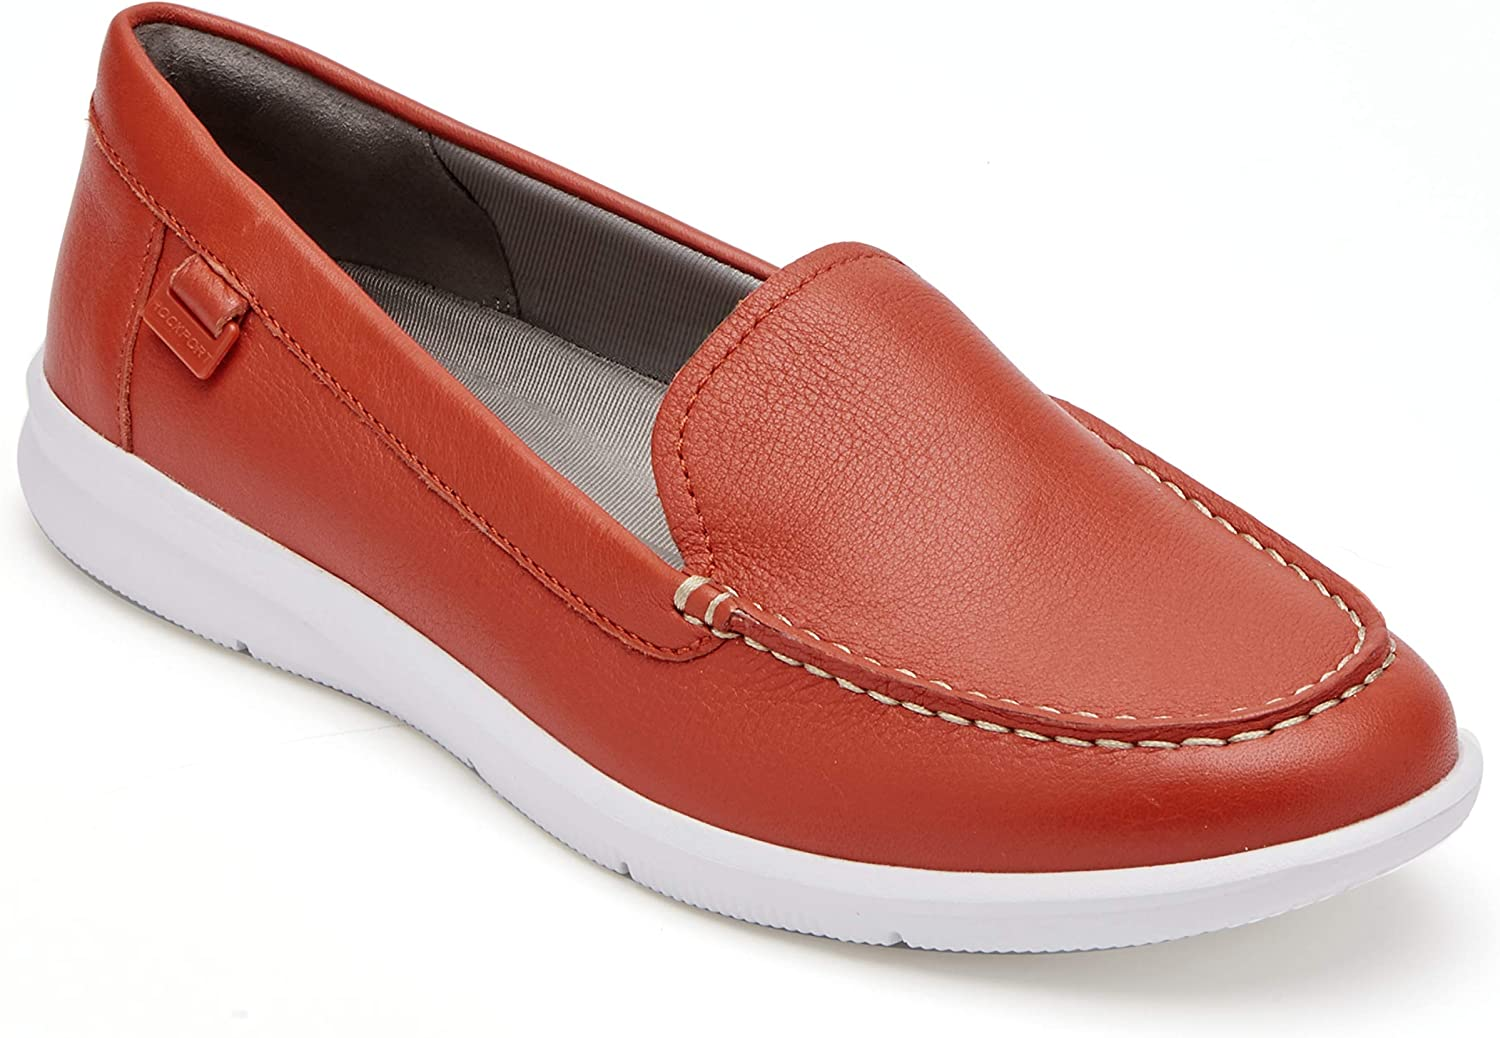 Rockport Women's Ayva security Loafer Flat Washable Gifts